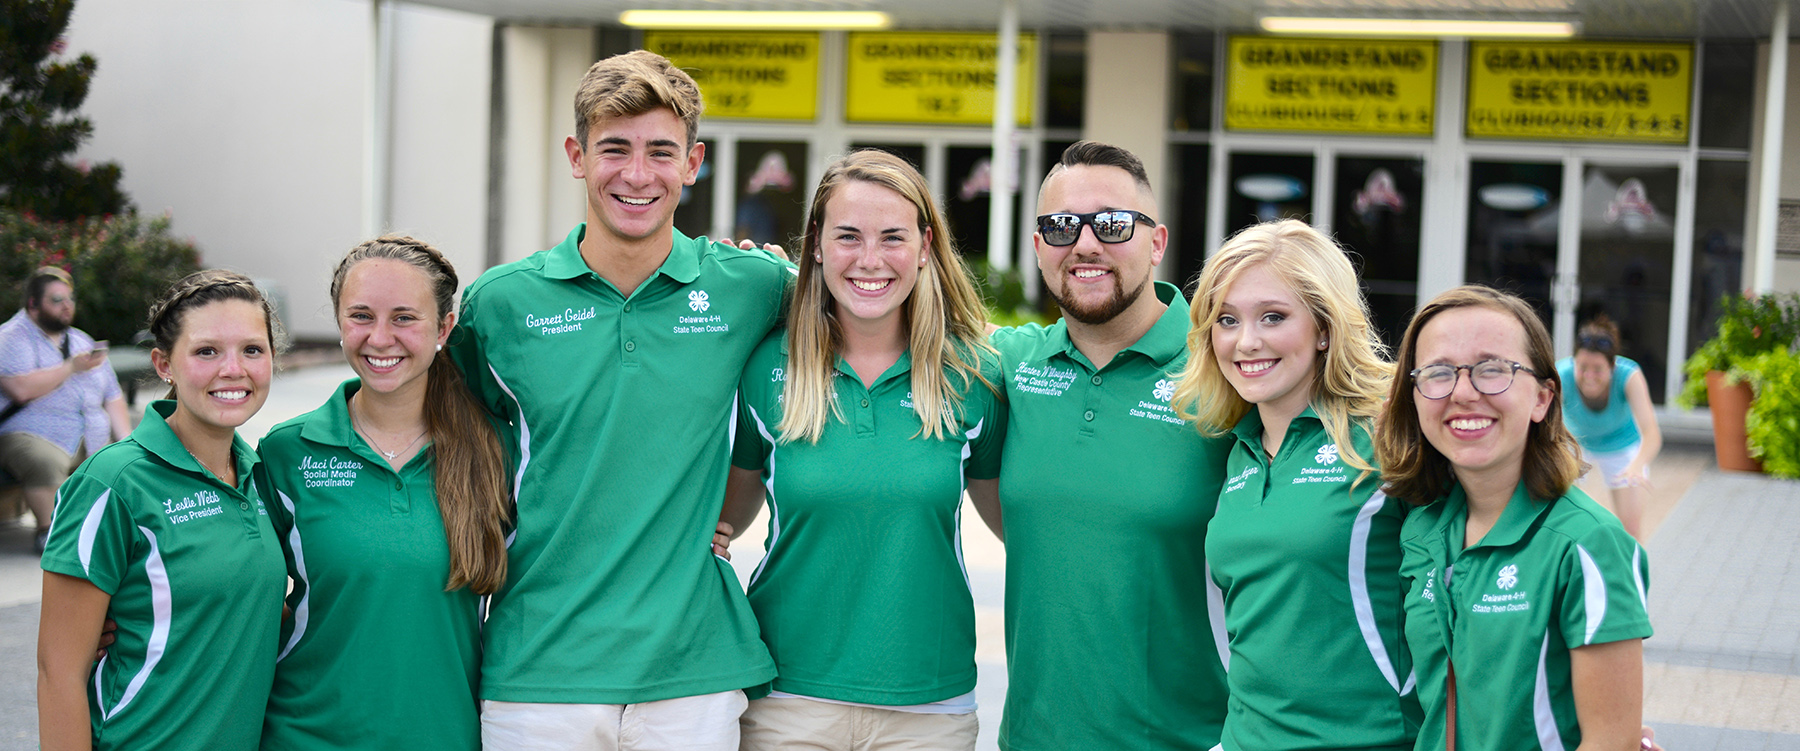 Delaware 4-H State Teen Council 2019 Officers